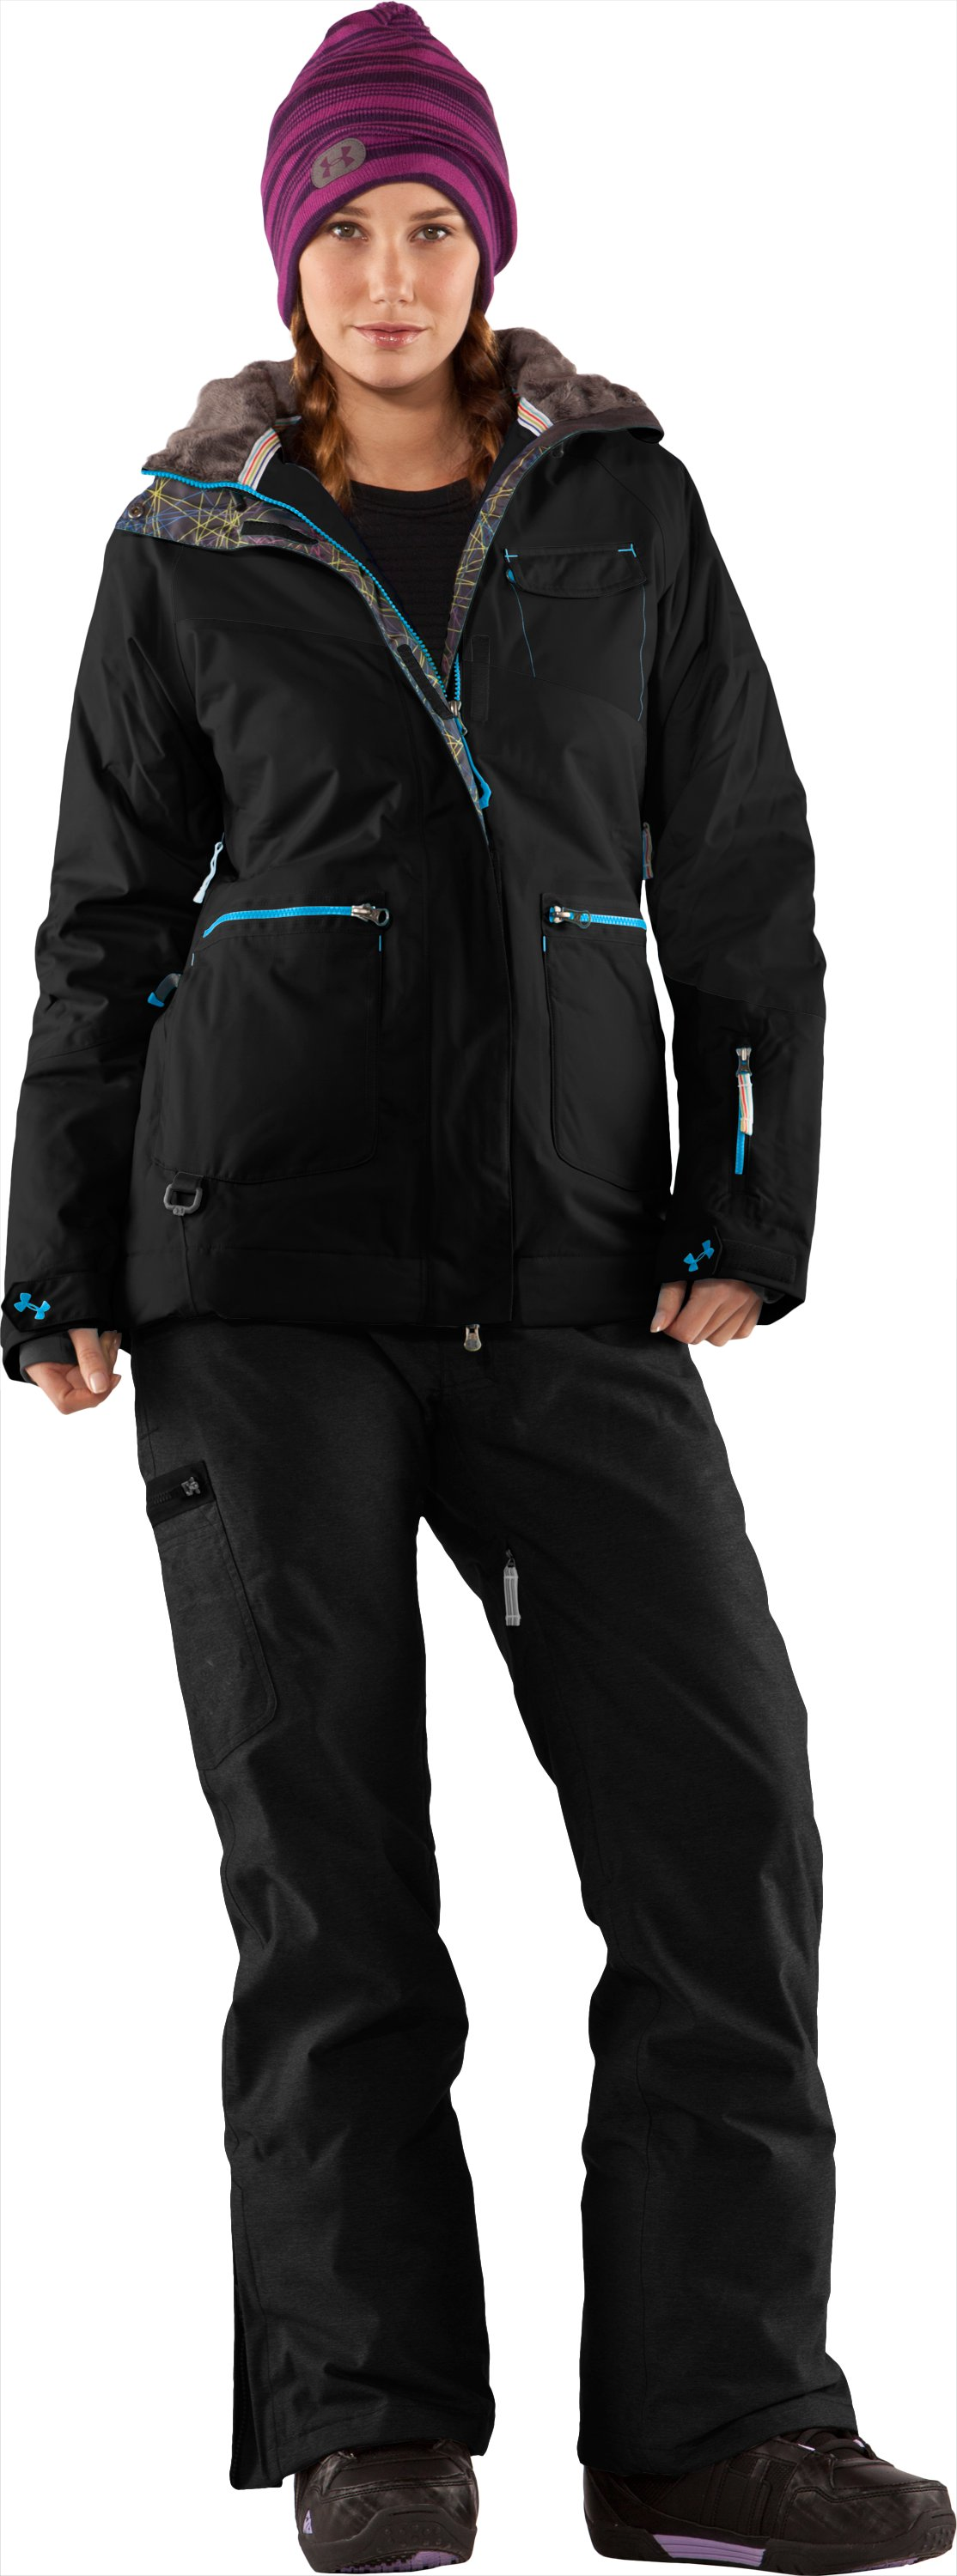 Women's Blar Waterproof Ski Jacket, Black , zoomed image